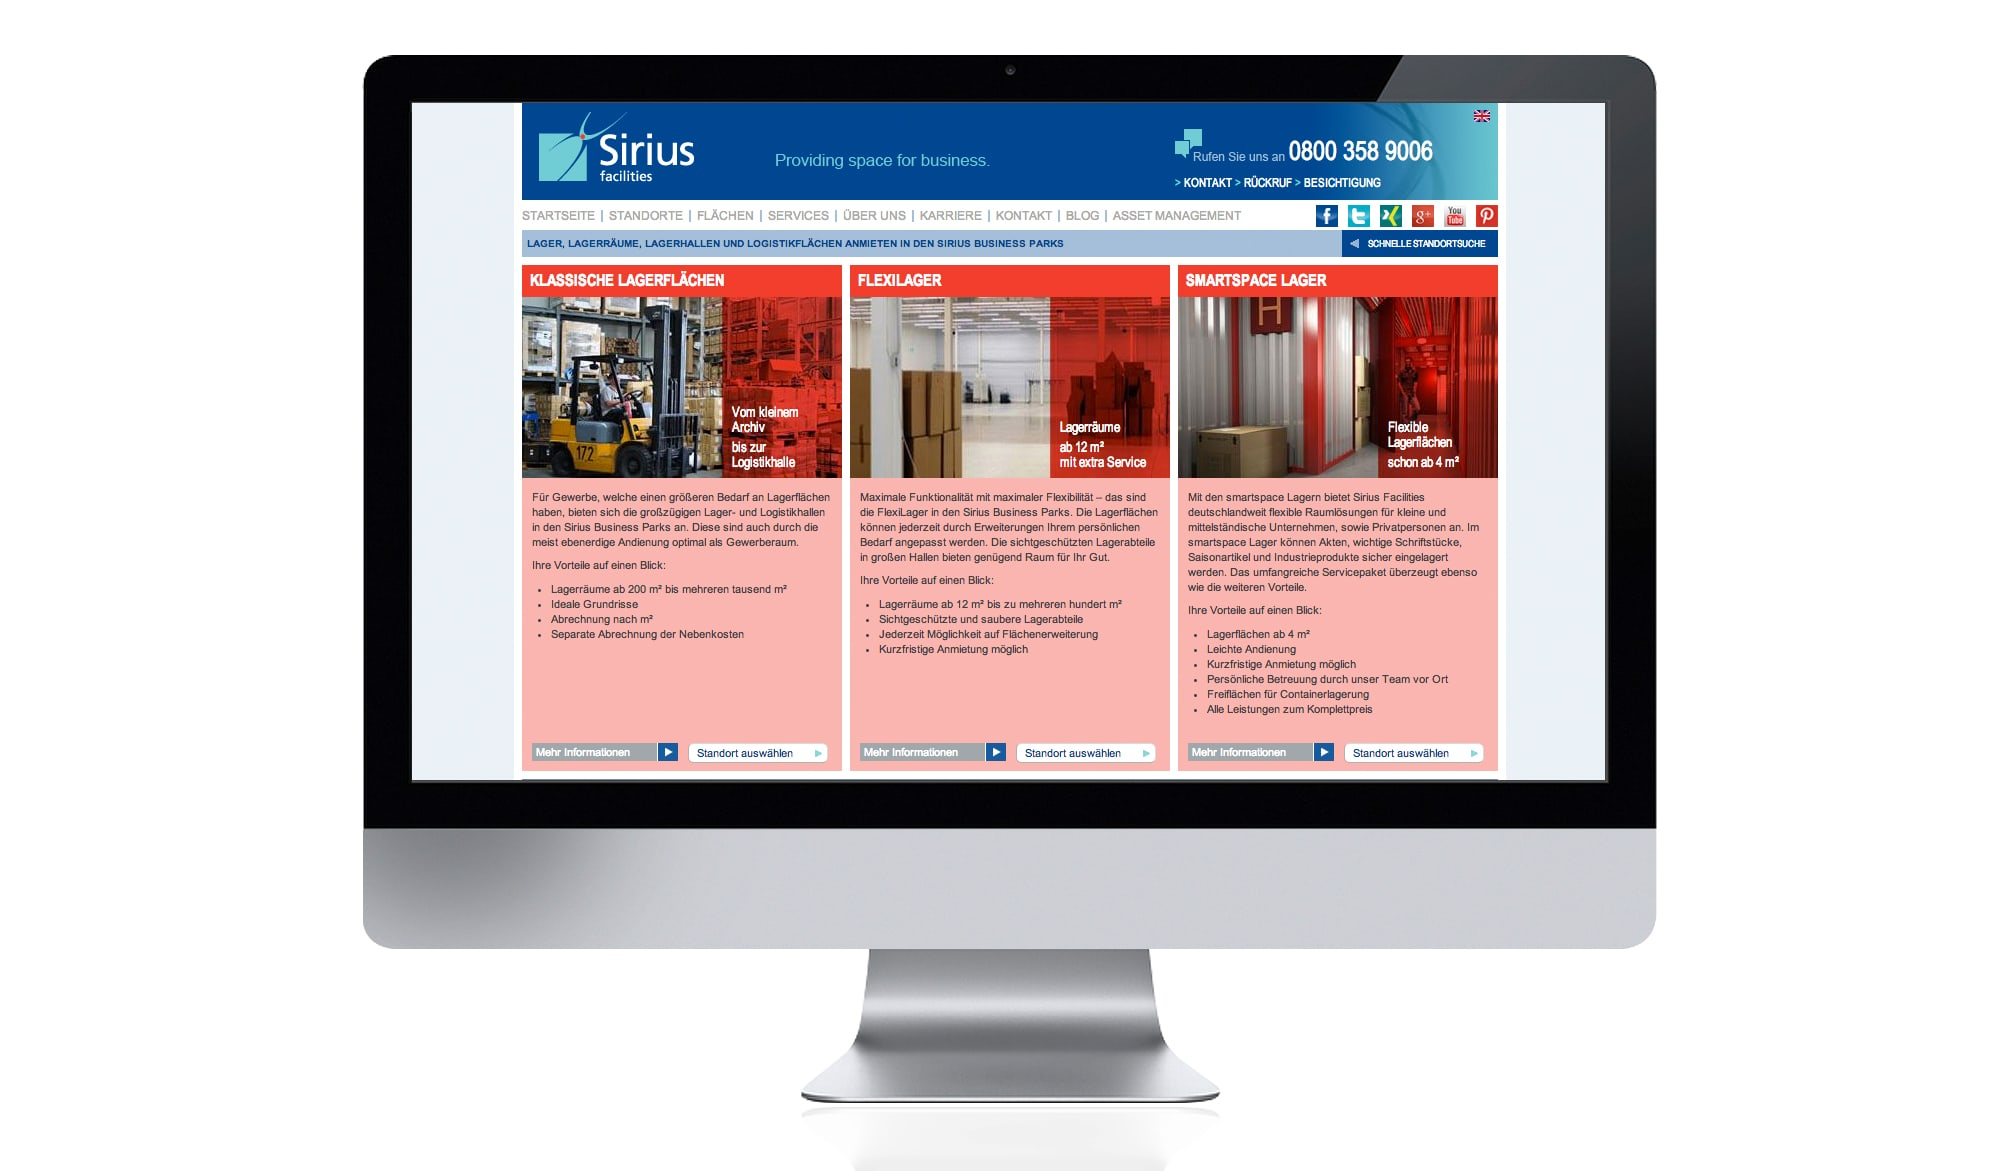 Sirius Facilities website - services page